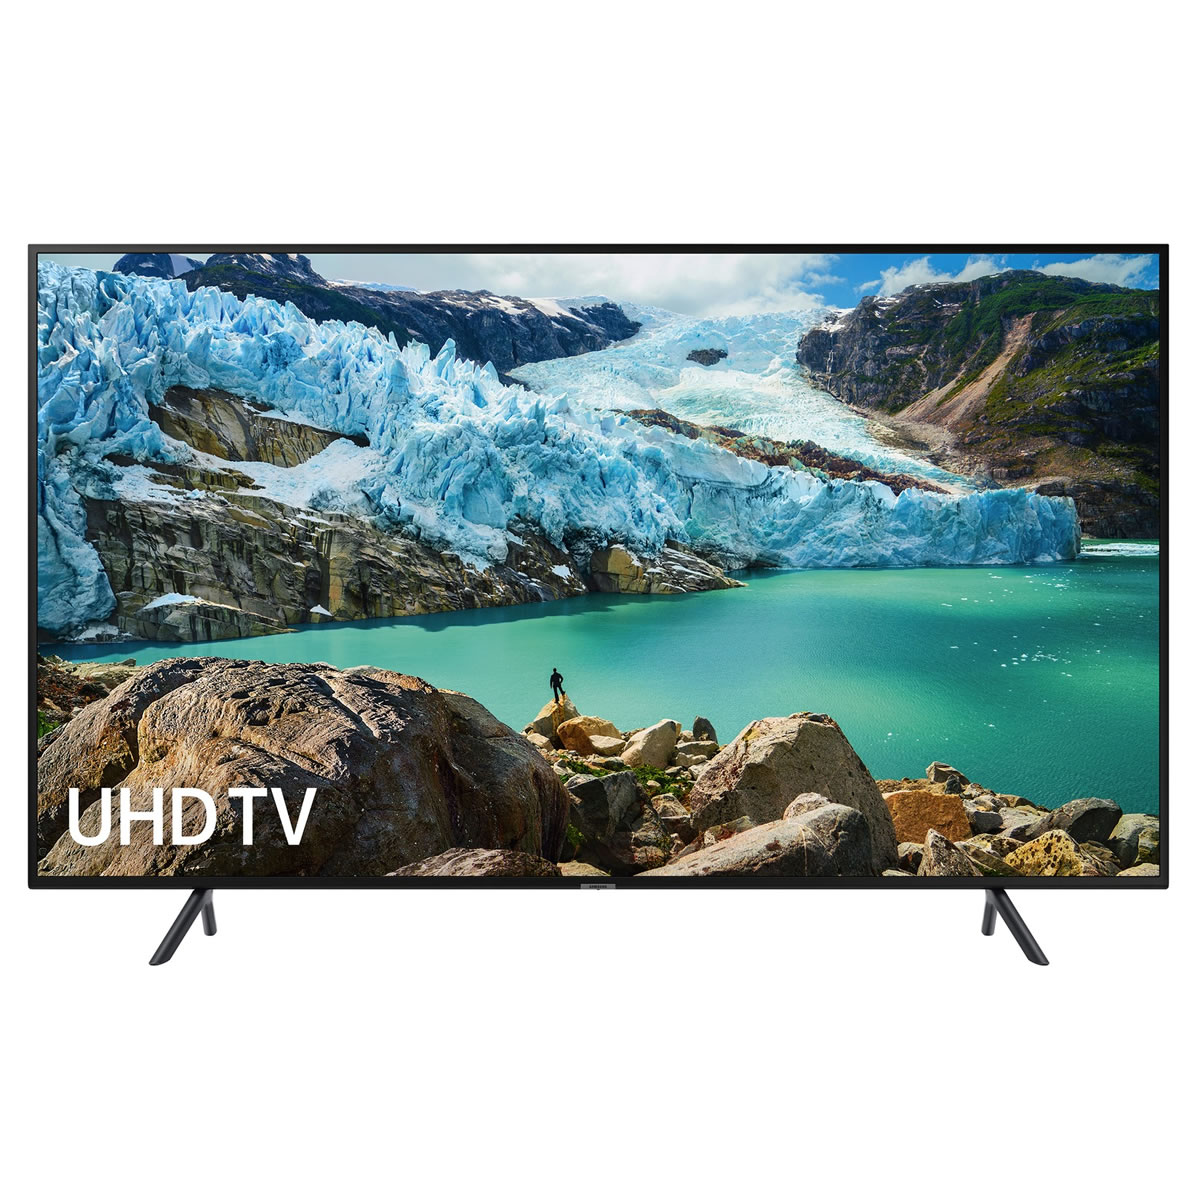 Image of 55inch UHD 4K LED SMART TV HDR TV Plus